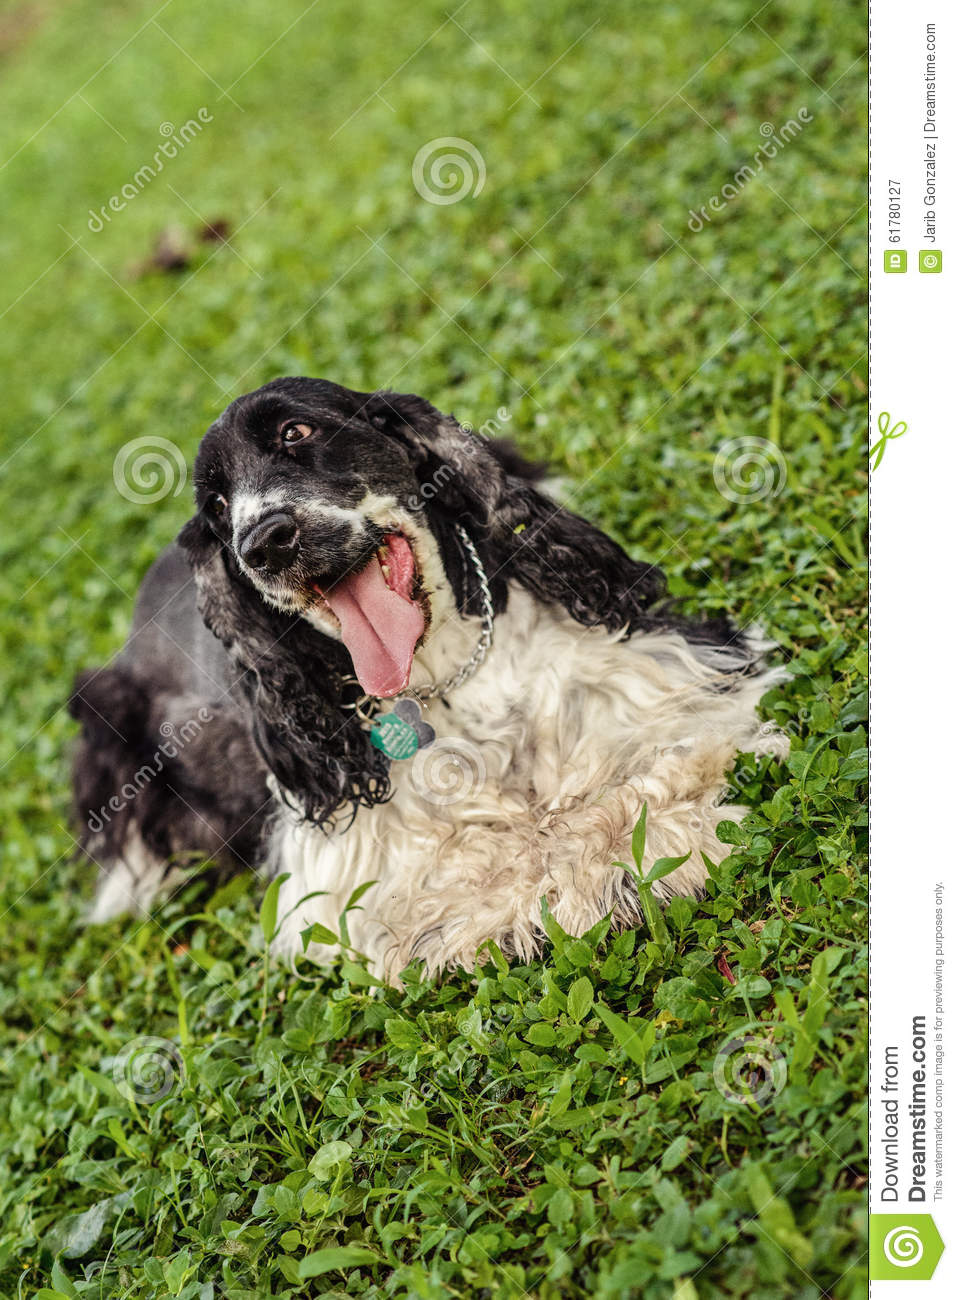 Black And White Cocker Spaniel Stock Photo - Image: 61780127